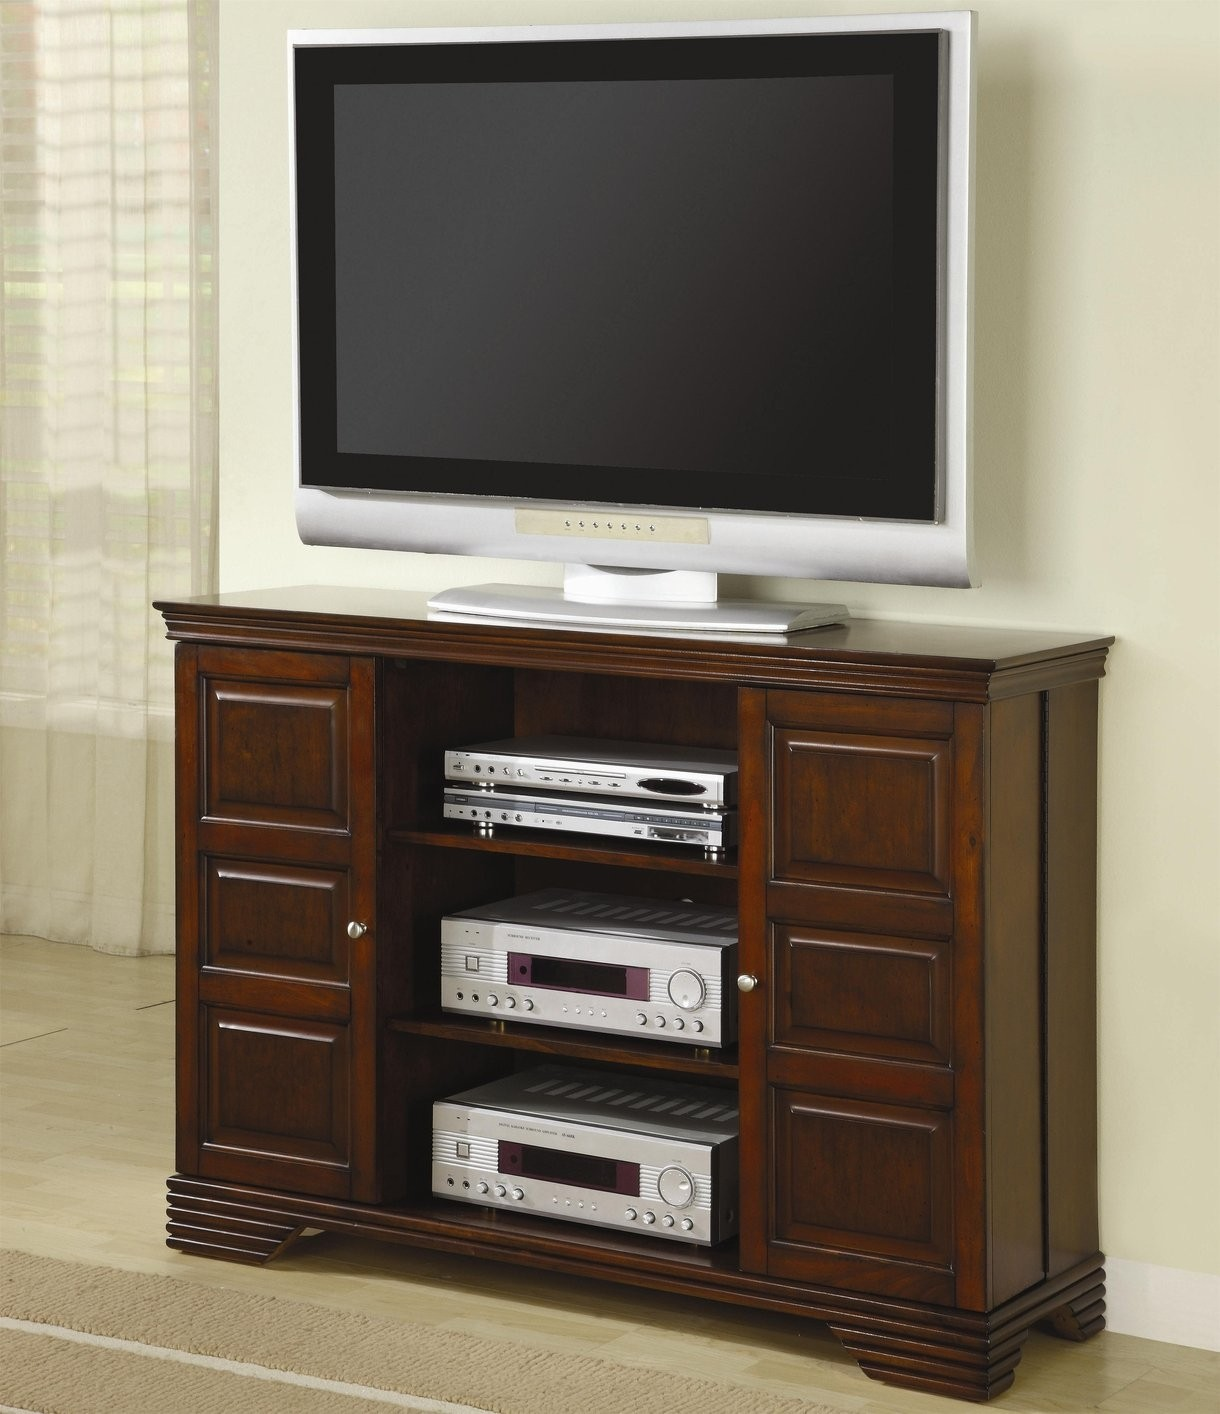 Charmant Tall Narrow Tv Stand